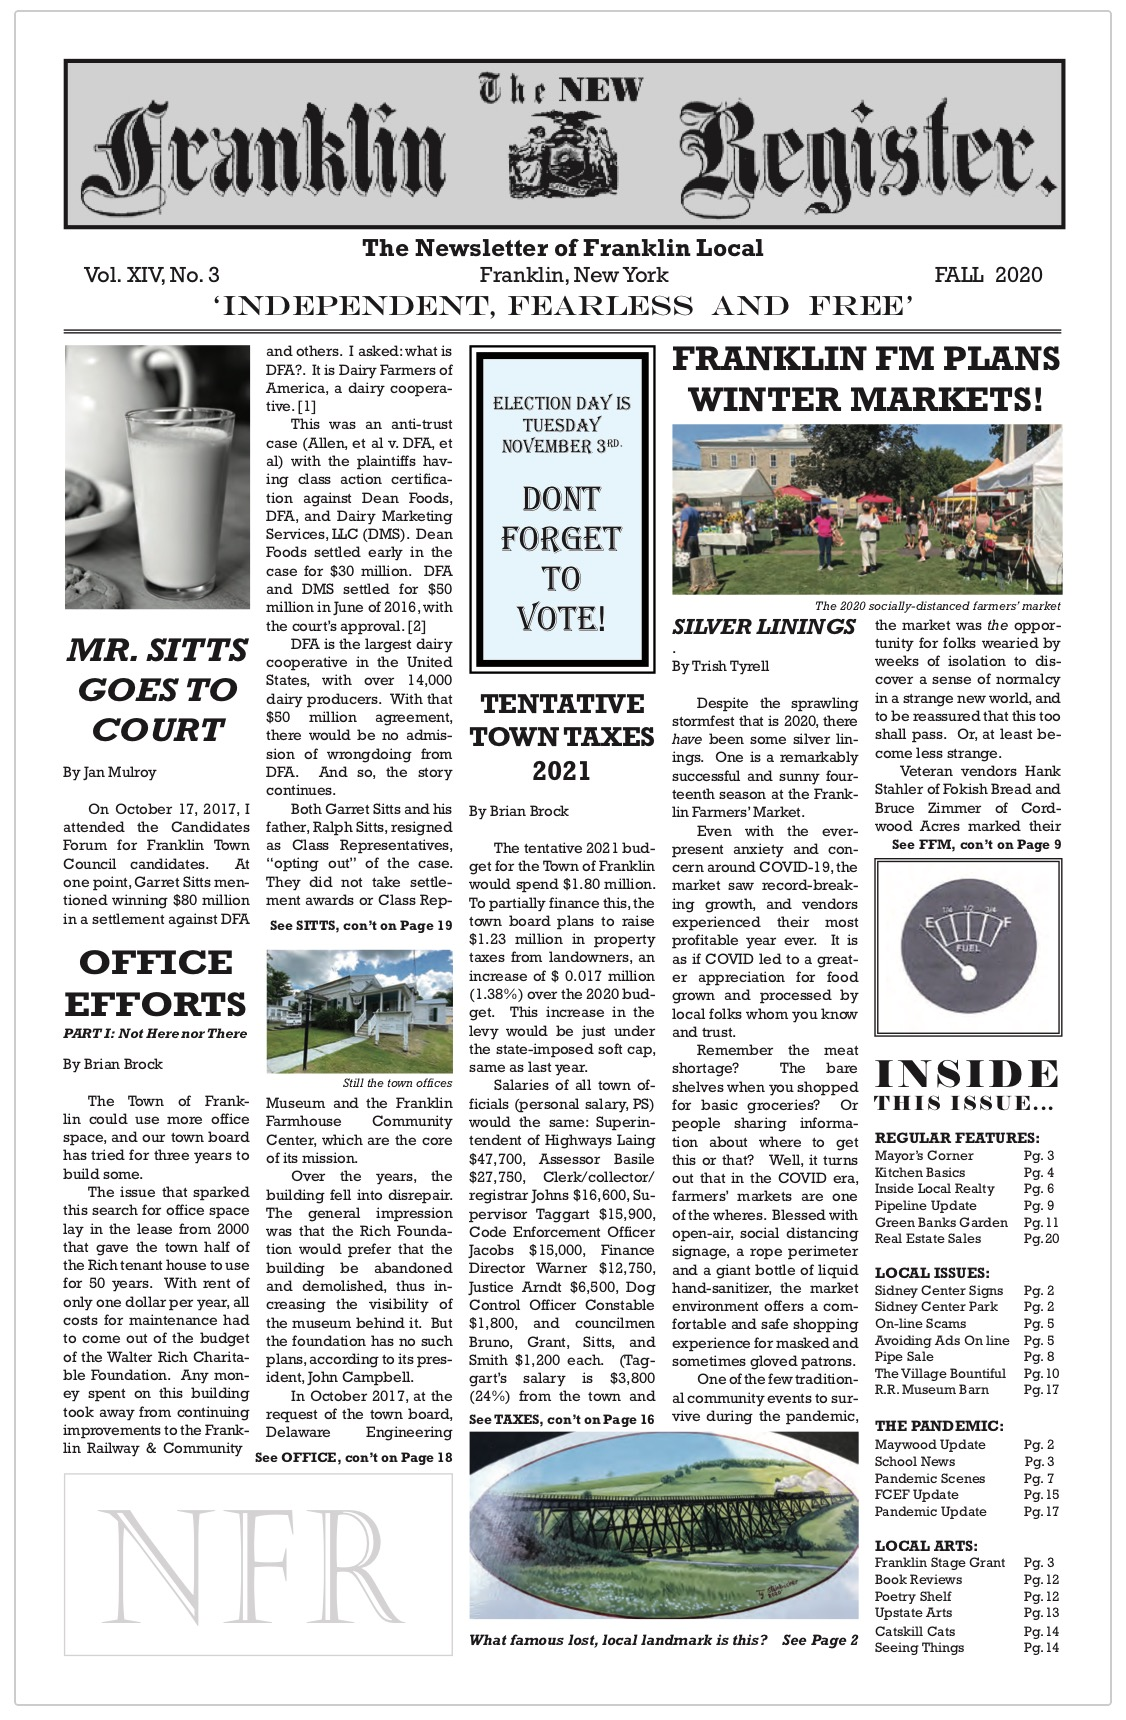 New Franklin Register, Fall 2020, issue #41